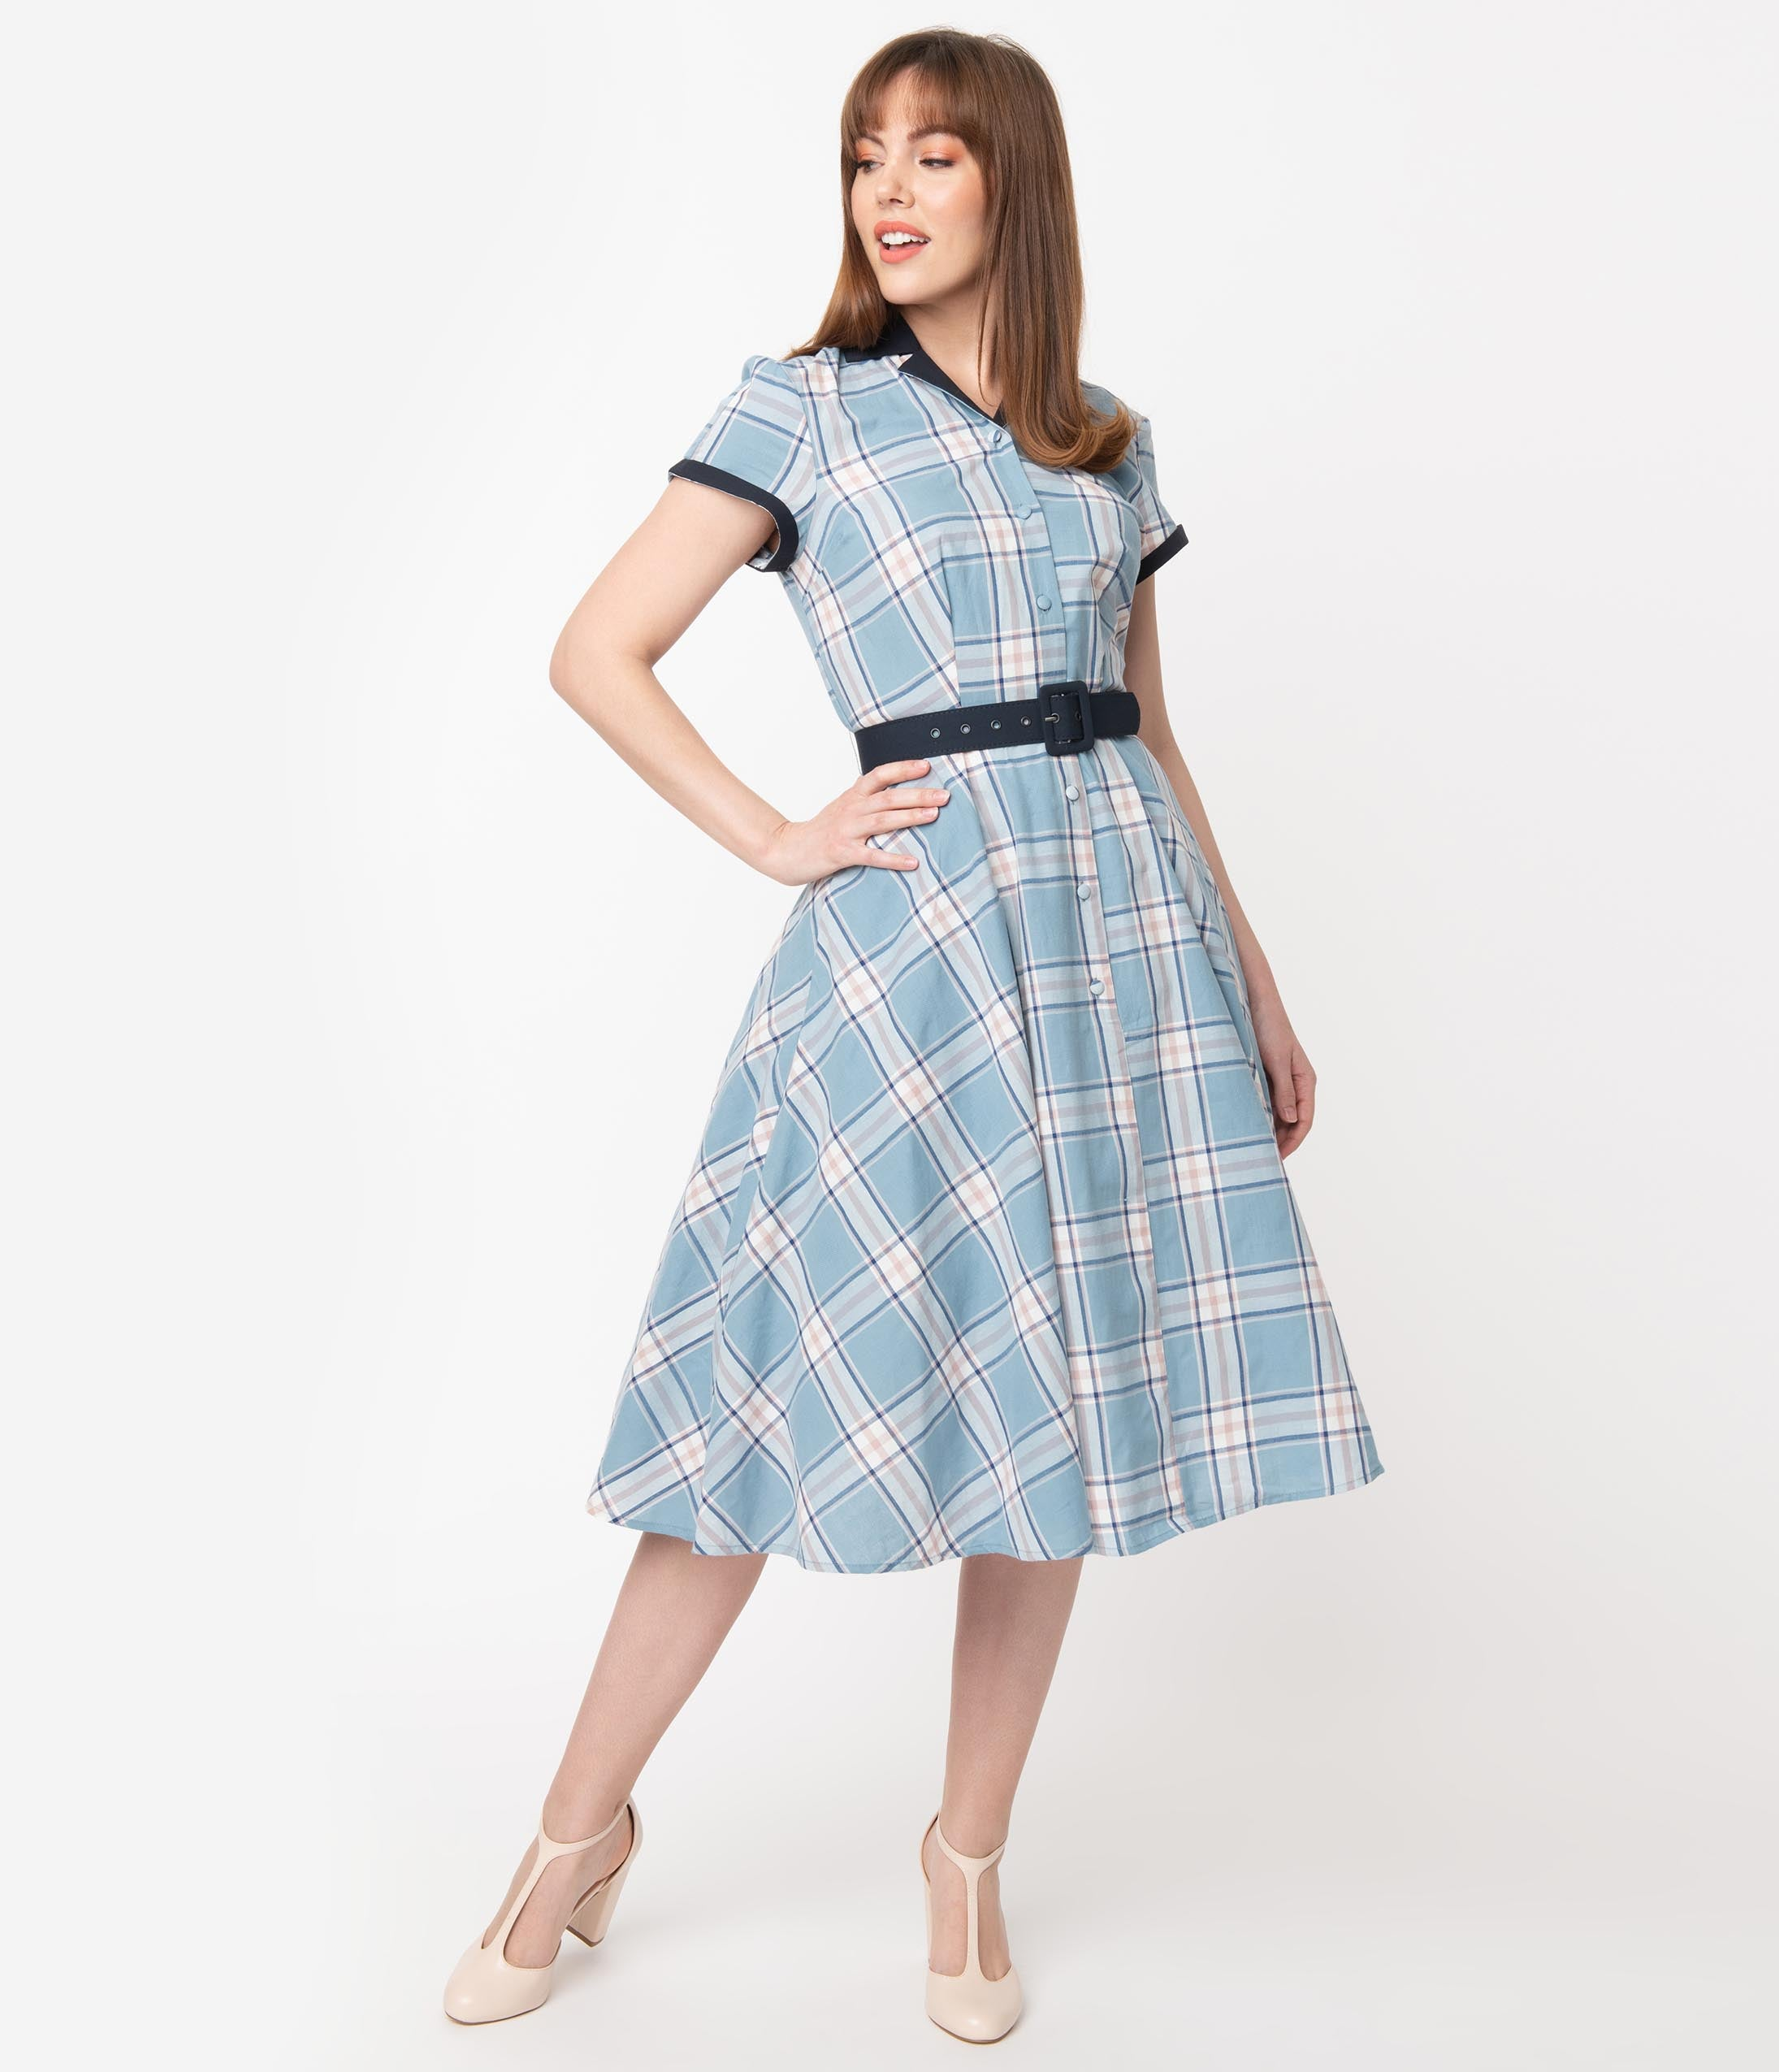 Vintage Shirtwaist Dress History Unique Vintage 1950S Style Light Blue Plaid Alexis Swing Dress $88.00 AT vintagedancer.com